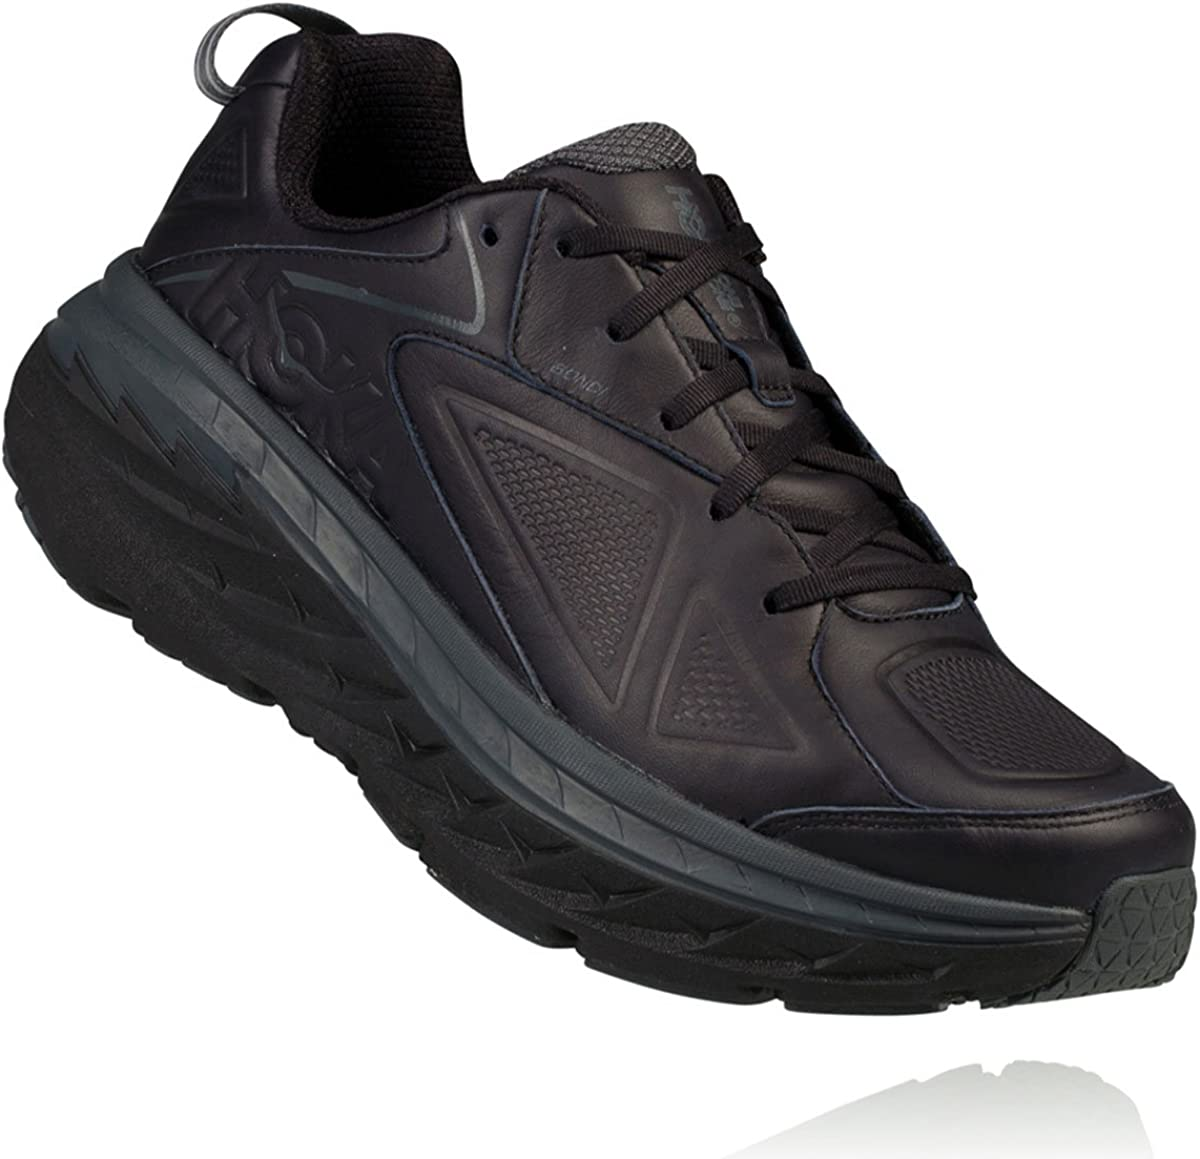 Hoka One W Bondi LTR Wide Black Running Shoes